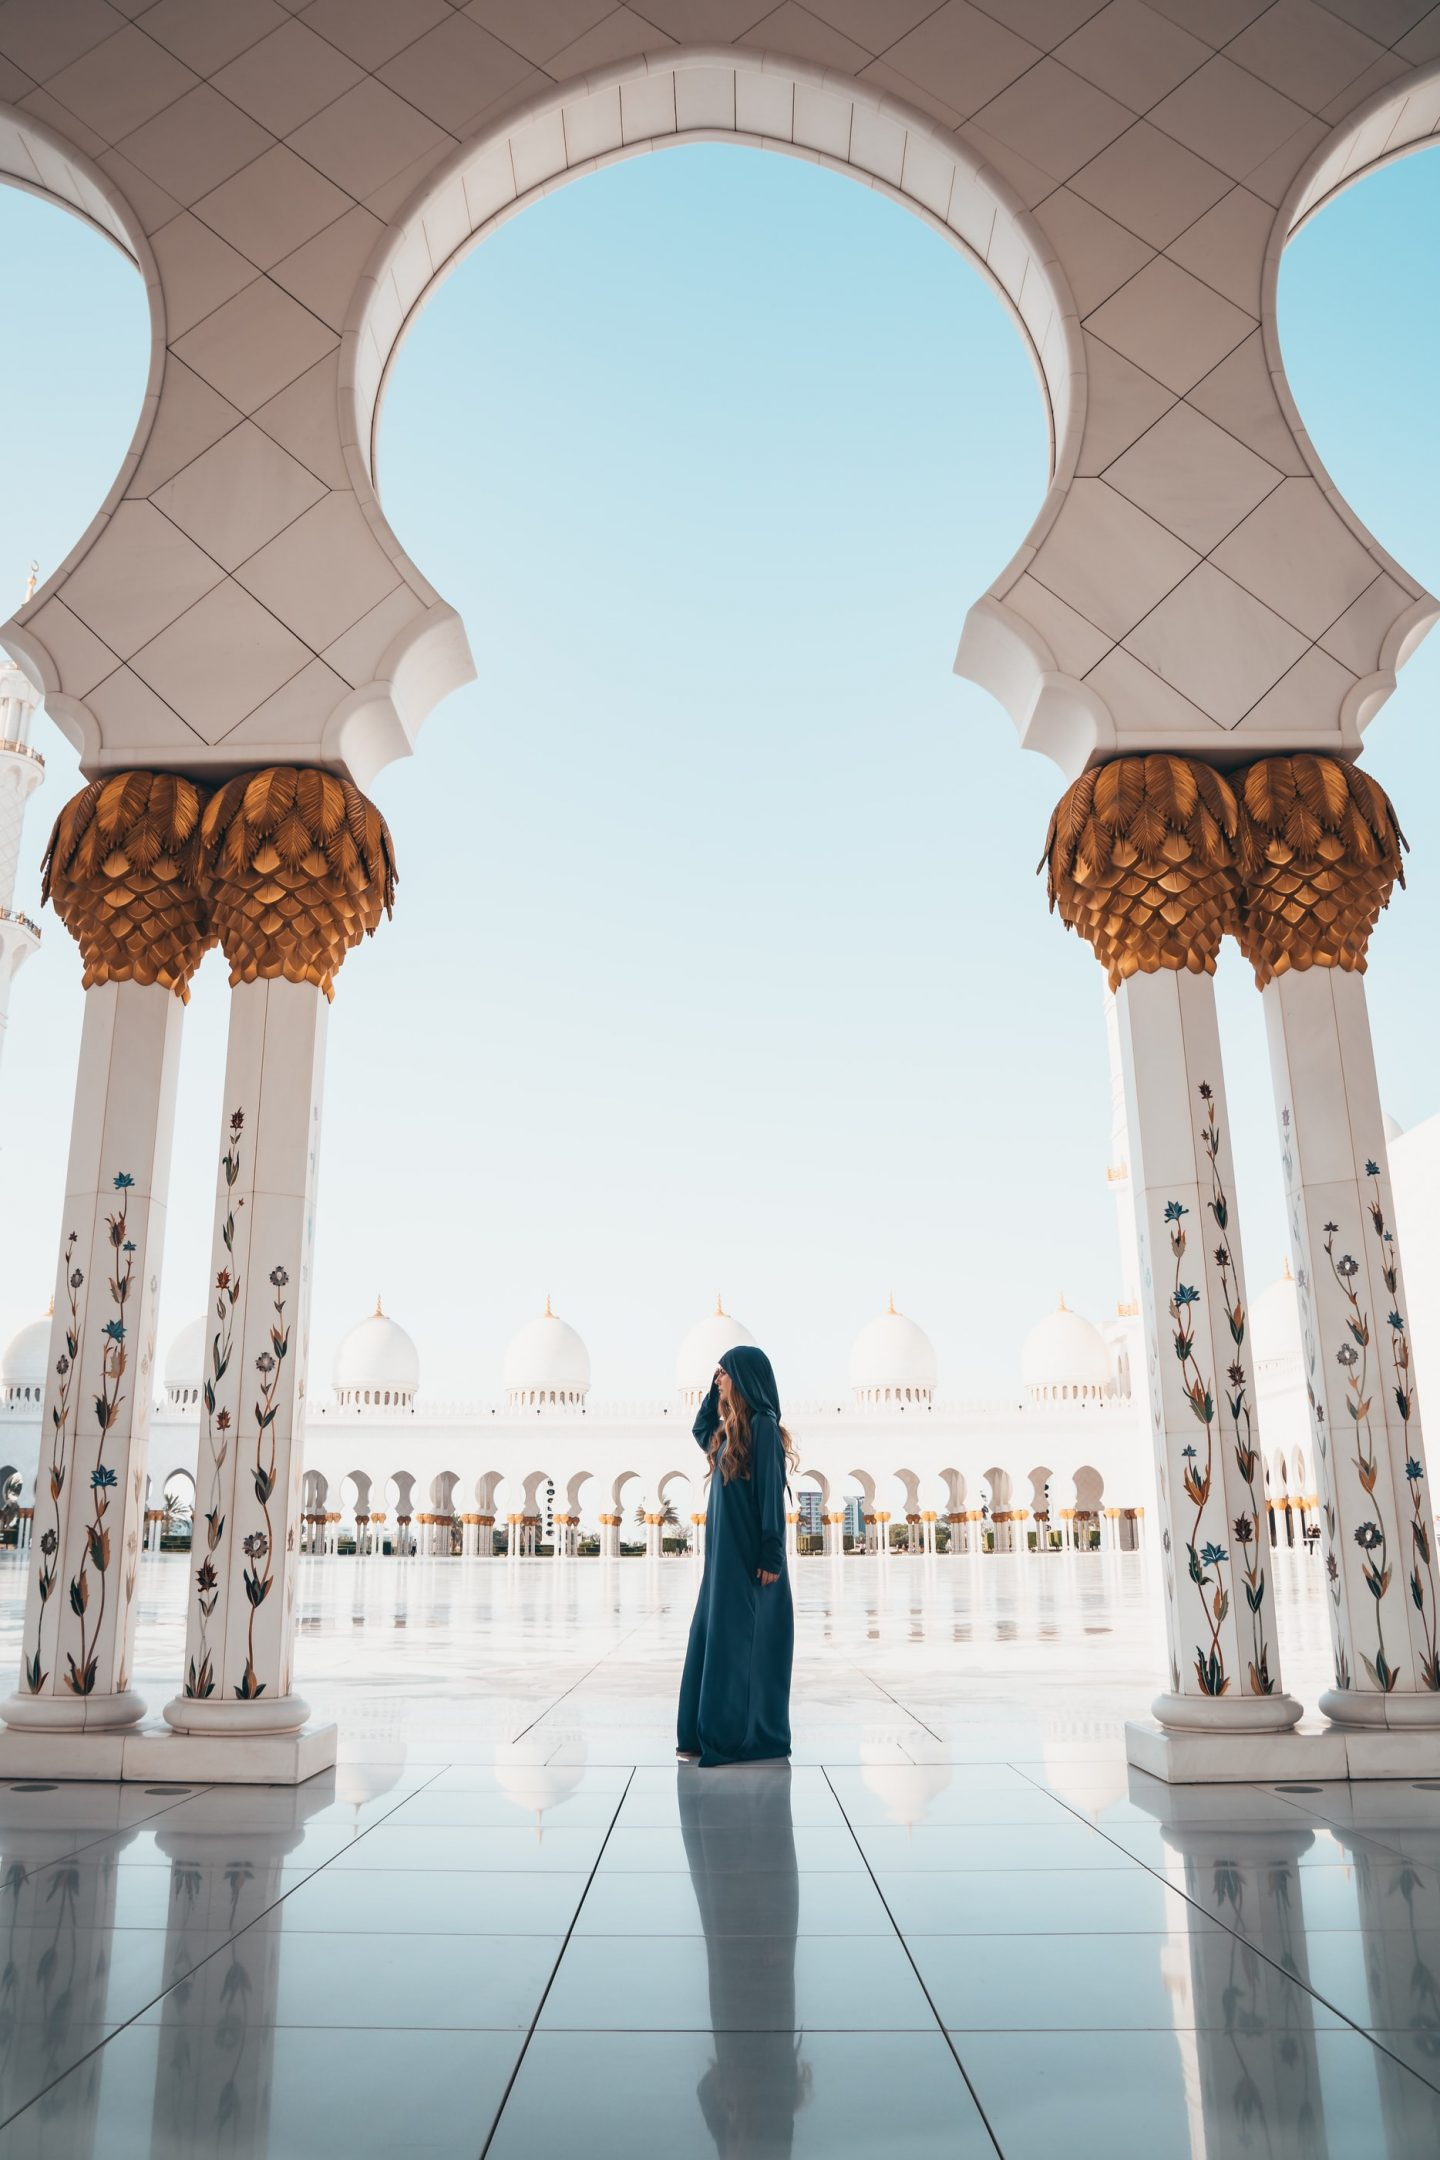 girl in a mosque, pillars, photography, architectual photography